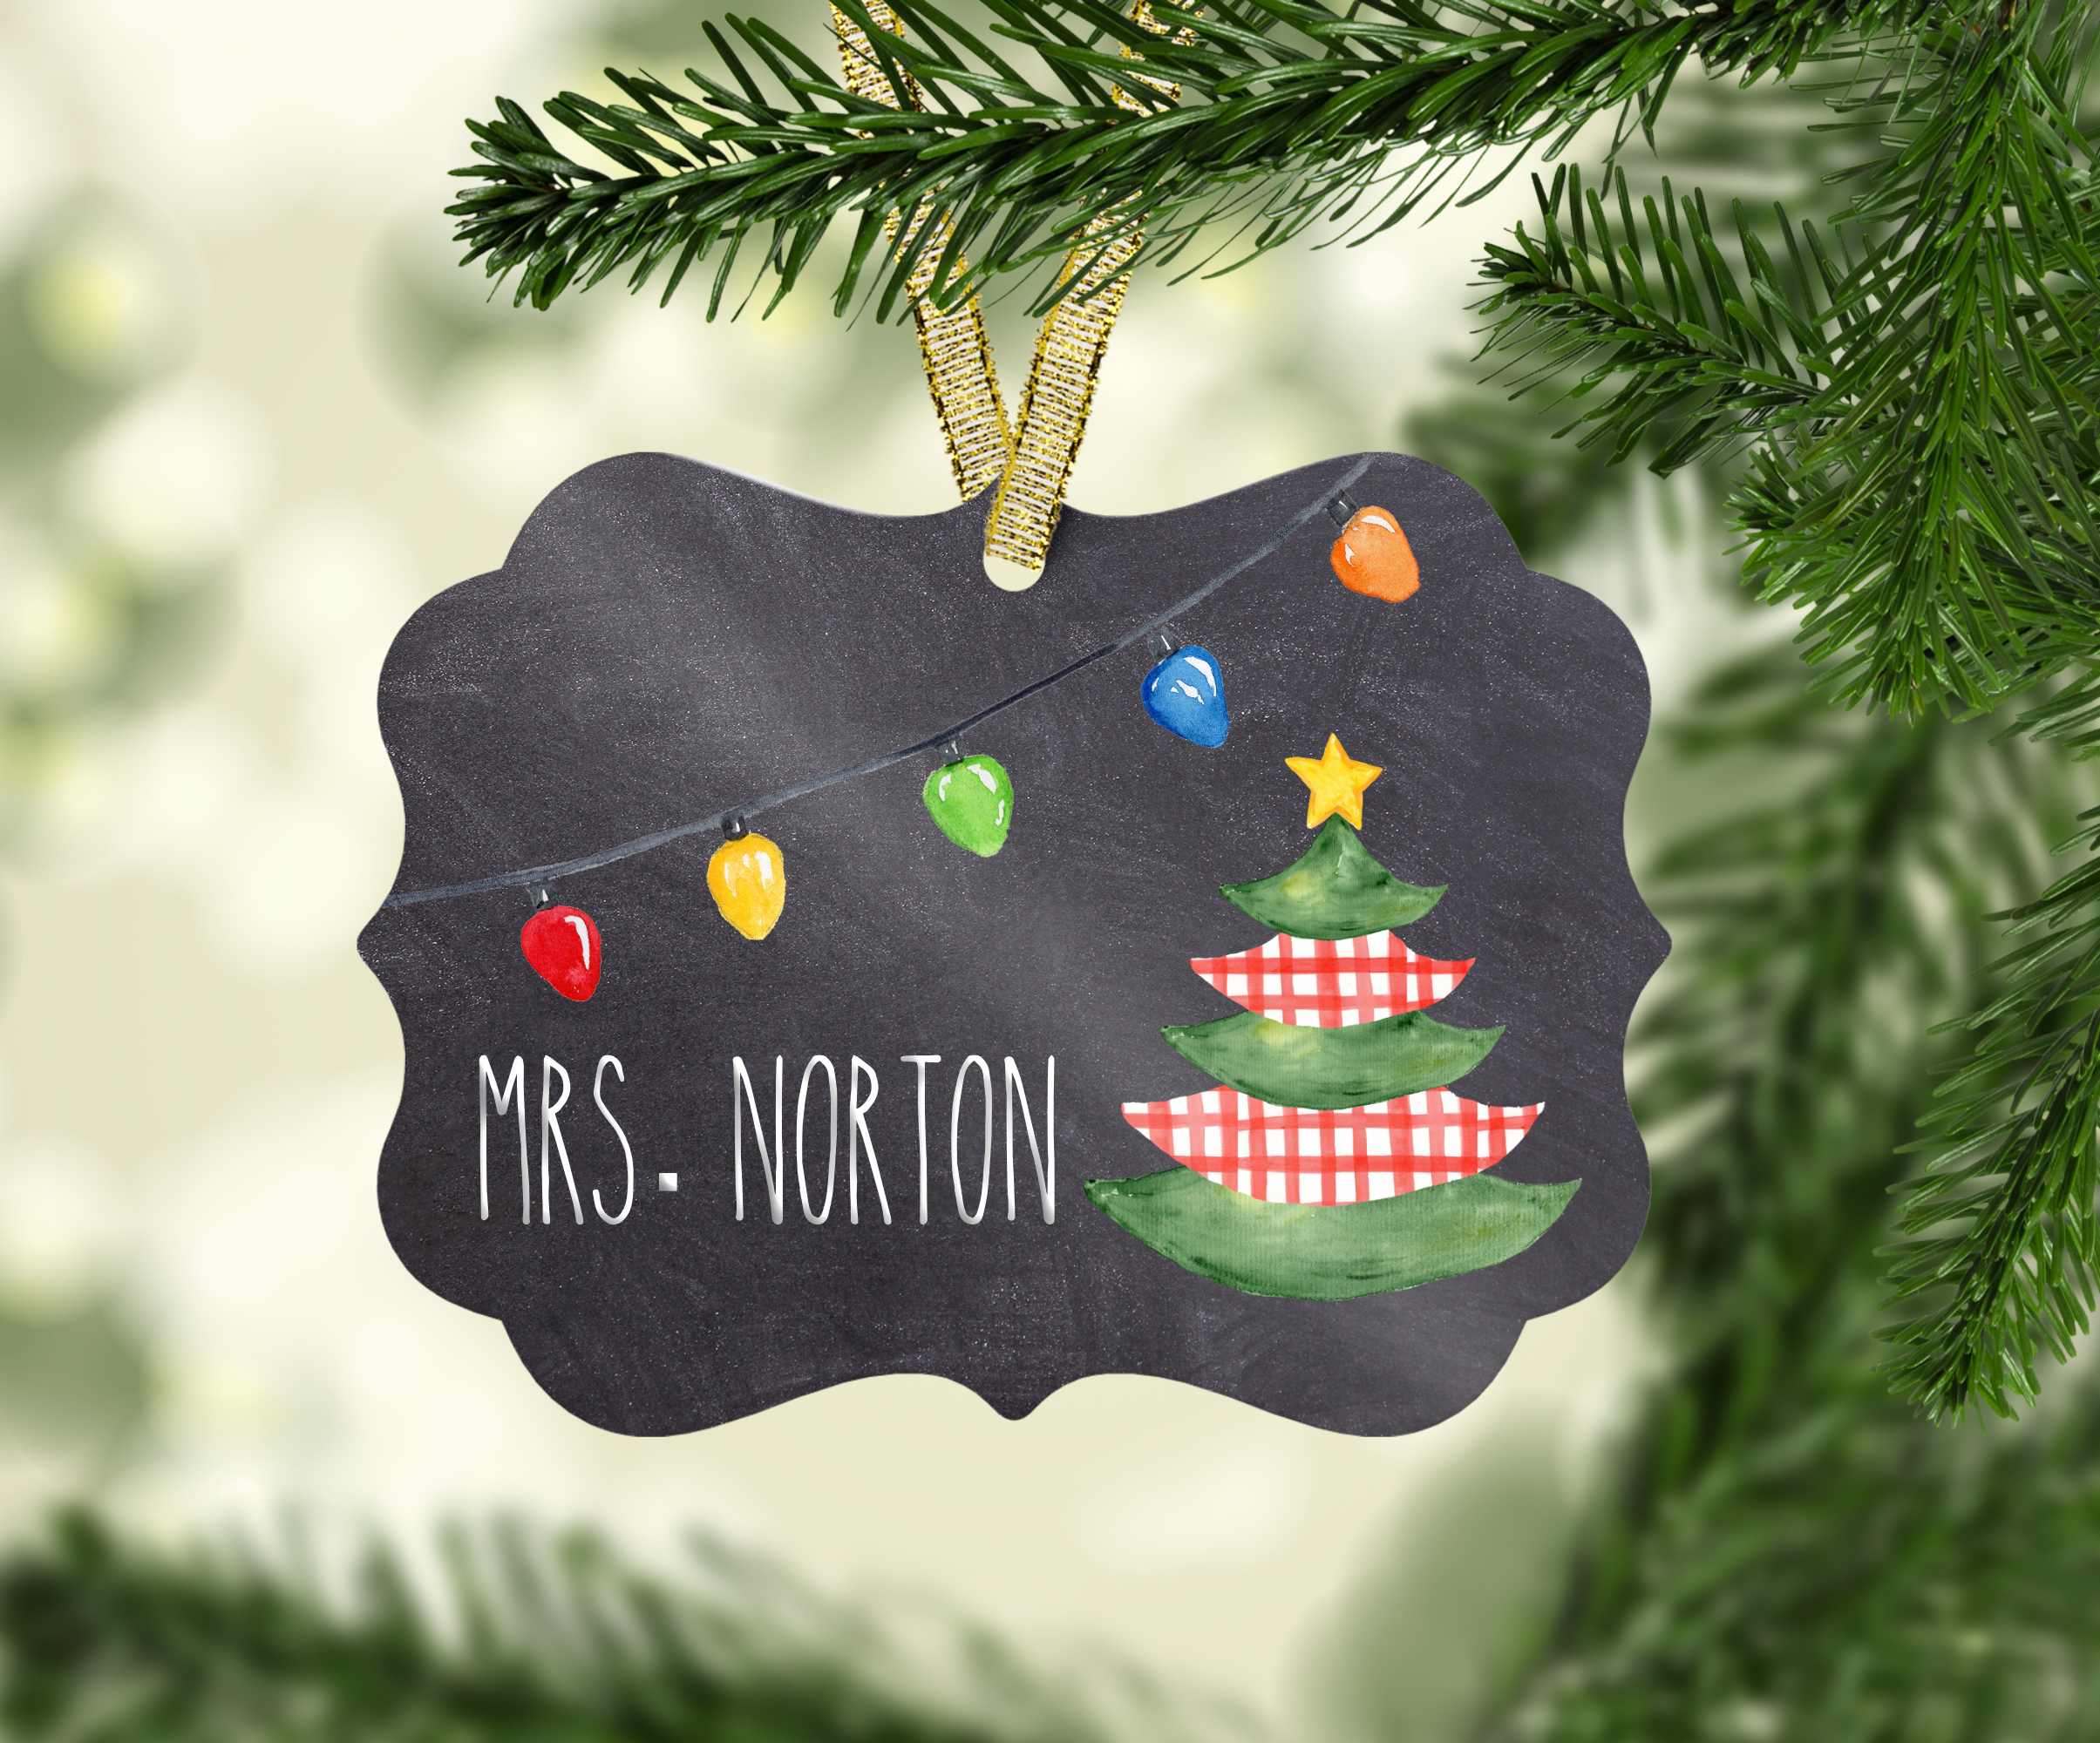 Sublimation Ornament Template - Chalkboard Background example image 2